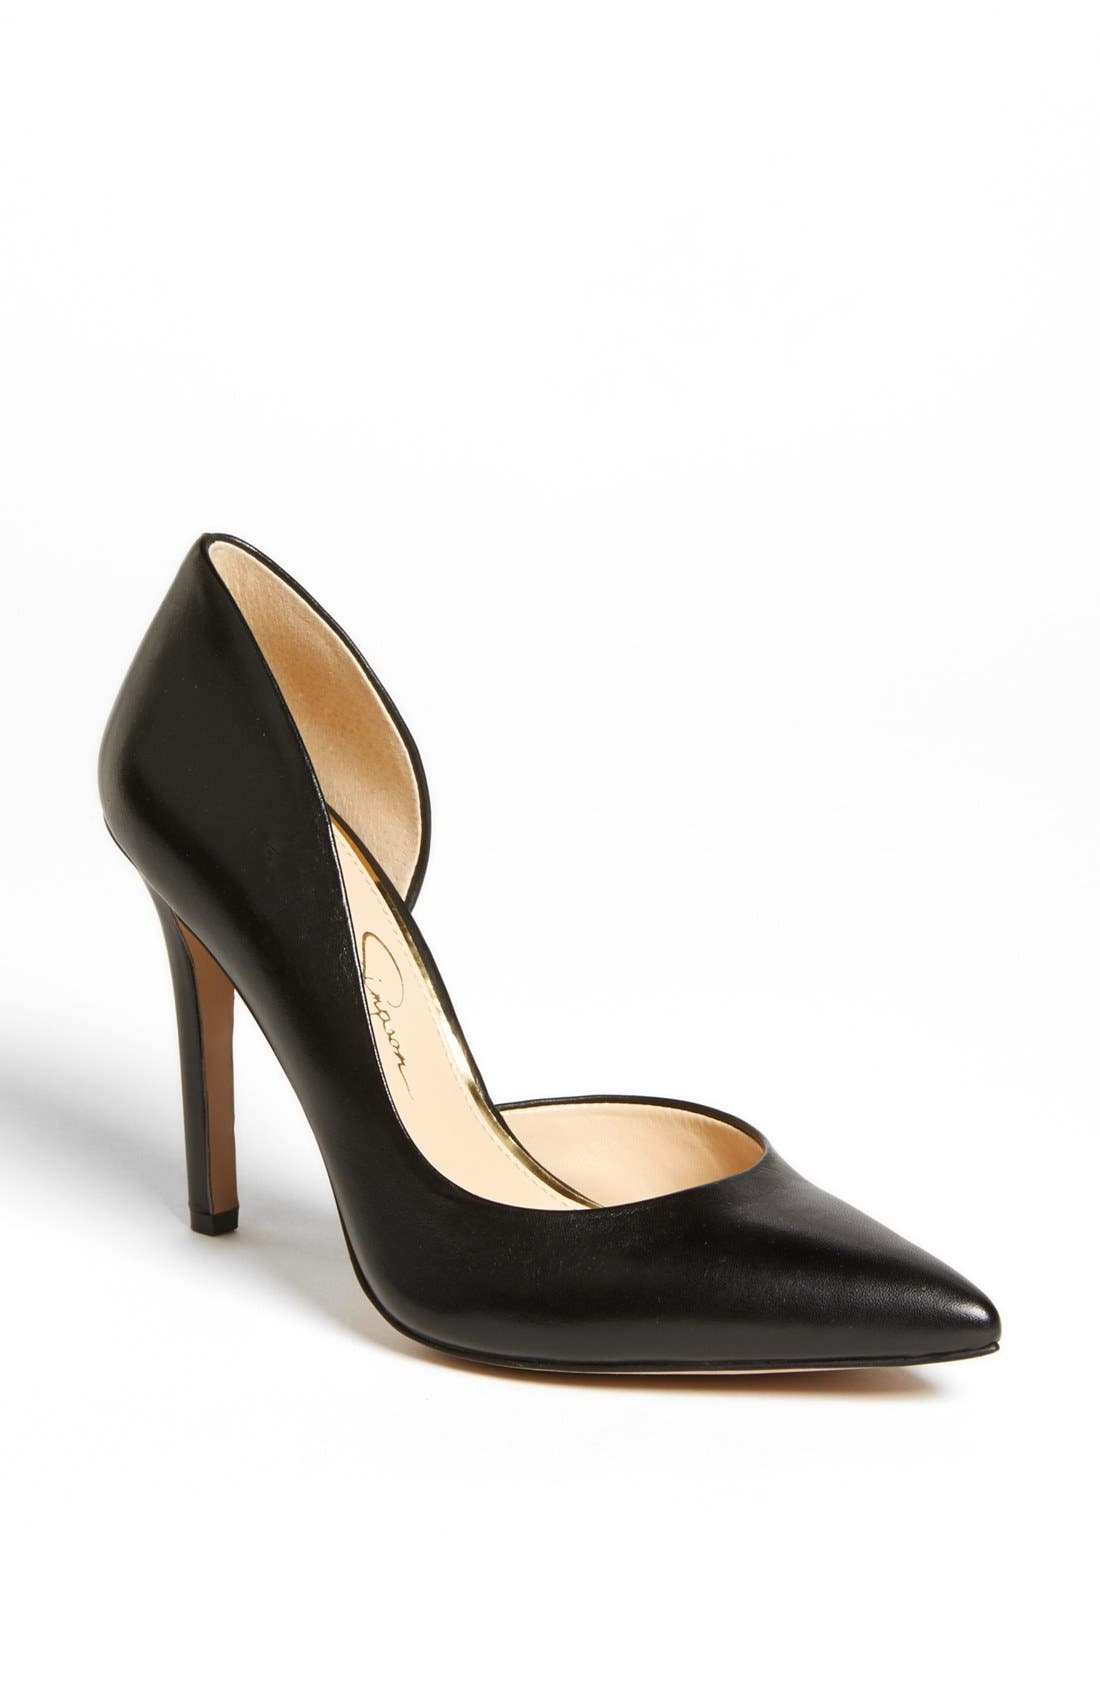 JESSICA SIMPSON 'Claudette' Half d'Orsay Pump, Main, color, 001